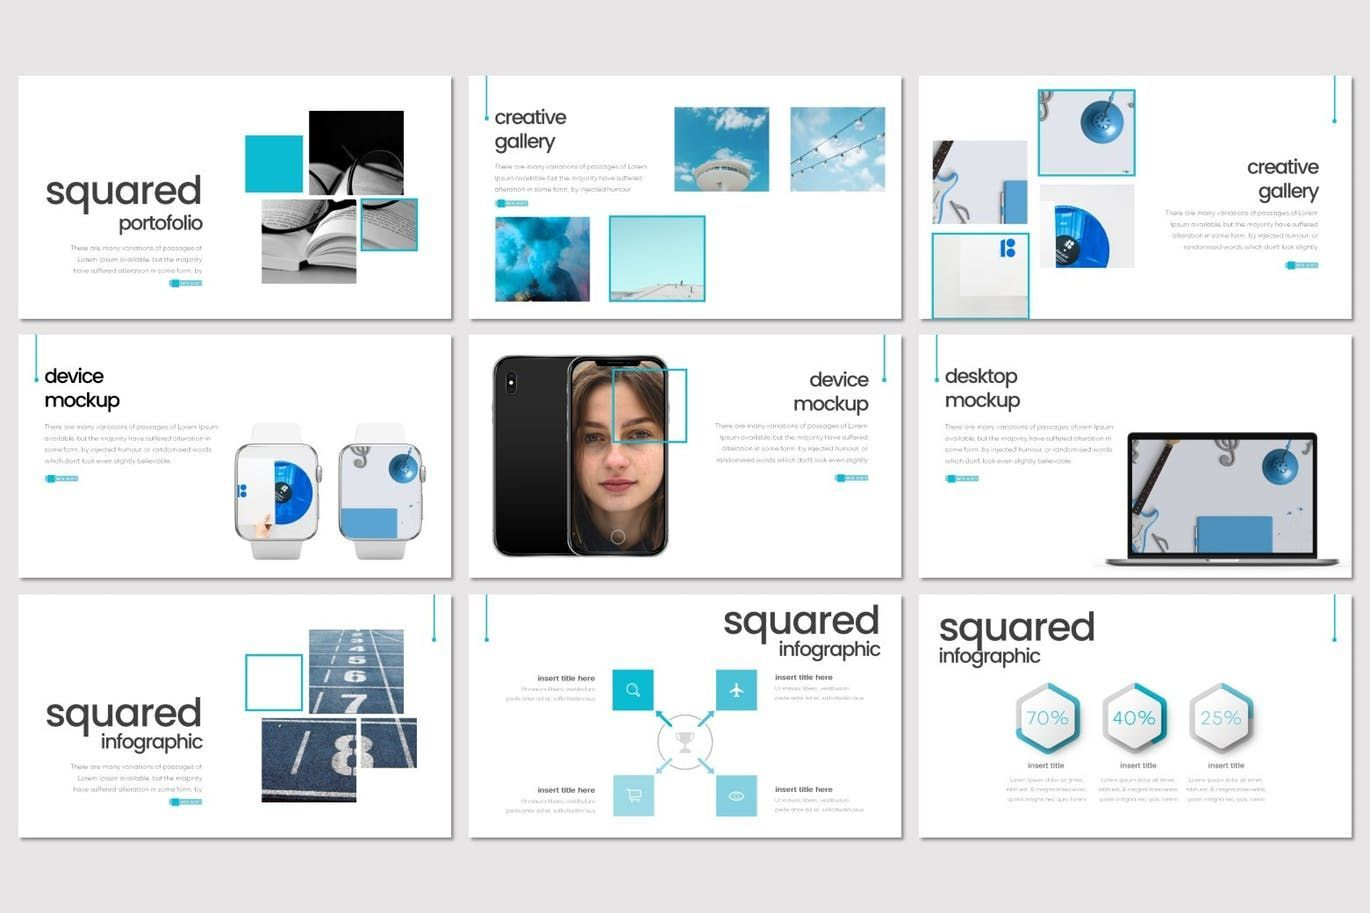 Squared - PowerPoint Template, Slide 4, 08291, Presentation Templates — PoweredTemplate.com